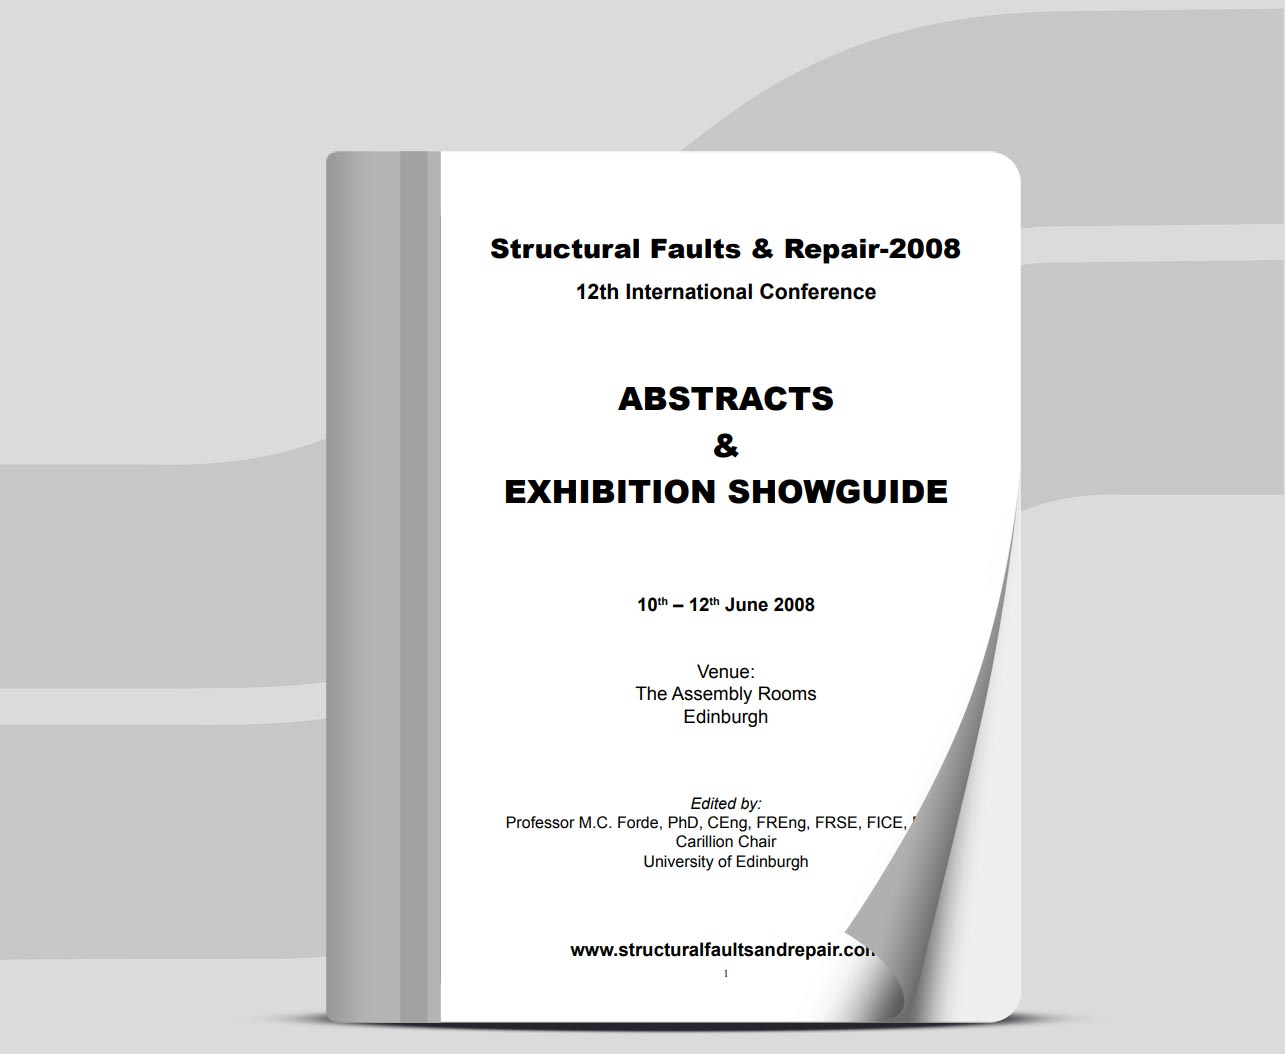 Structural Faults & Repair-2008 - 12th International Conference, Sineco